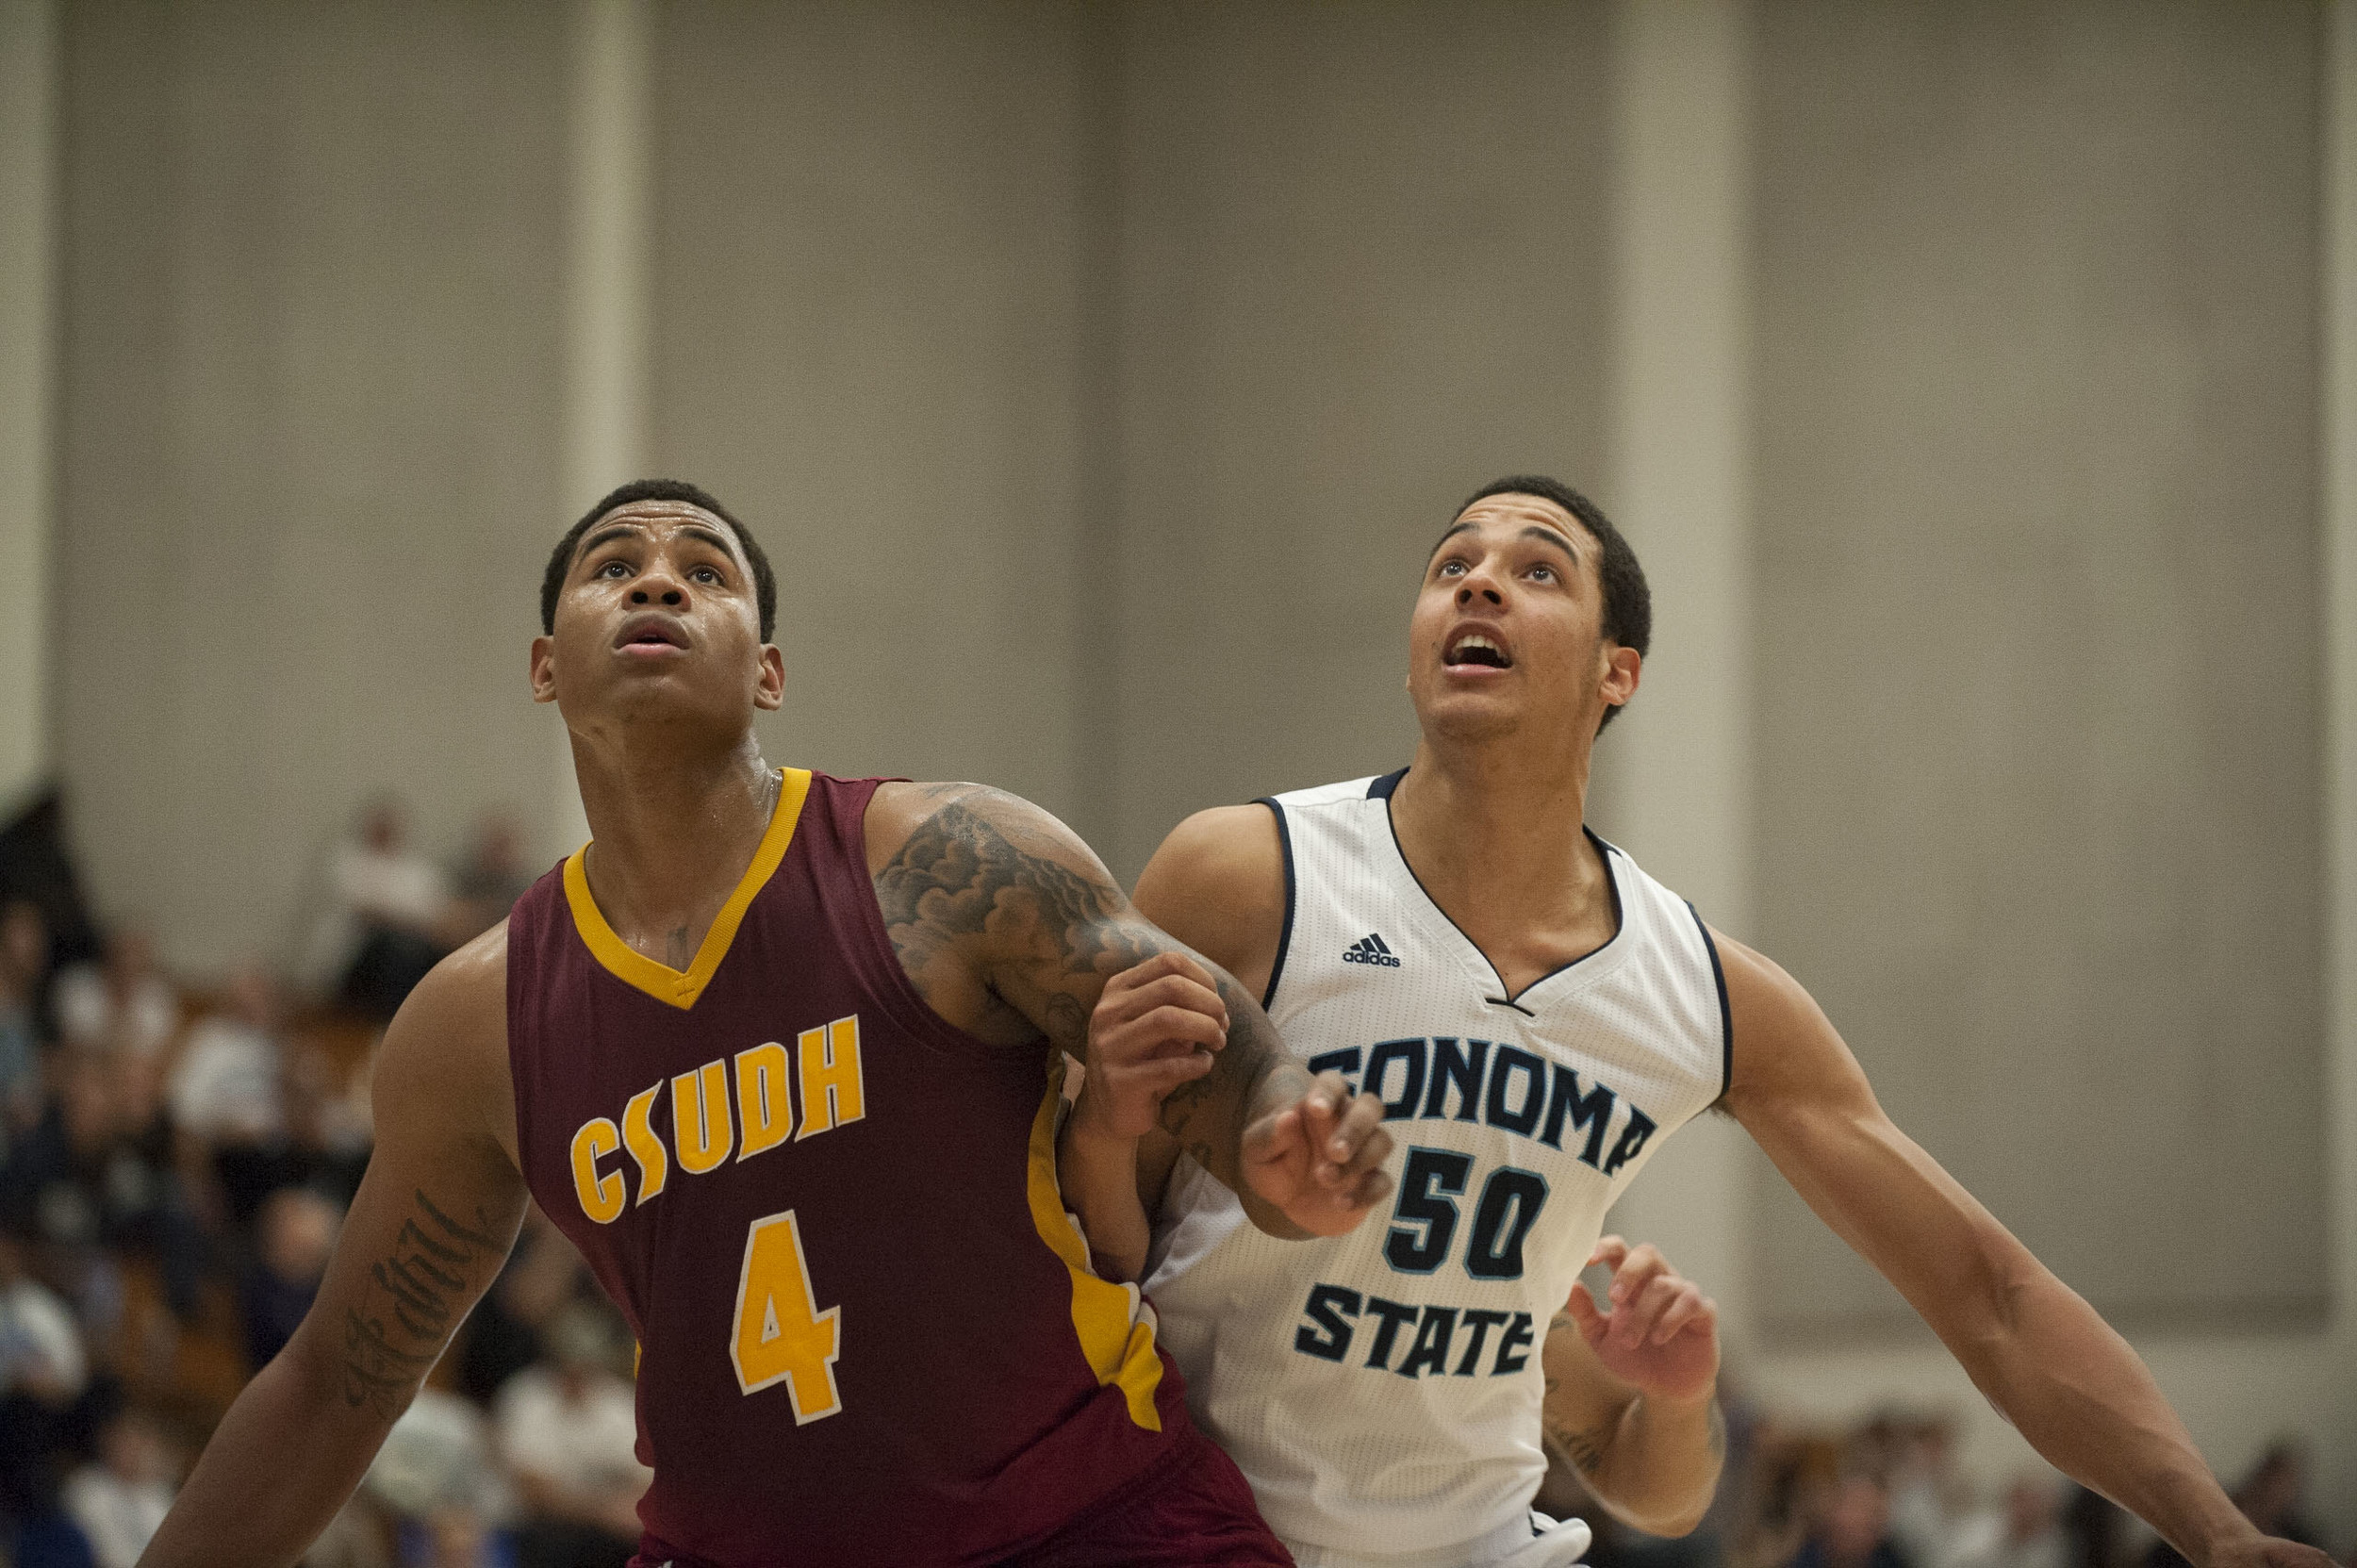 STAR // Connor Gibson   The Seawolves defeated Cal State Dominguez Hills 61-53.